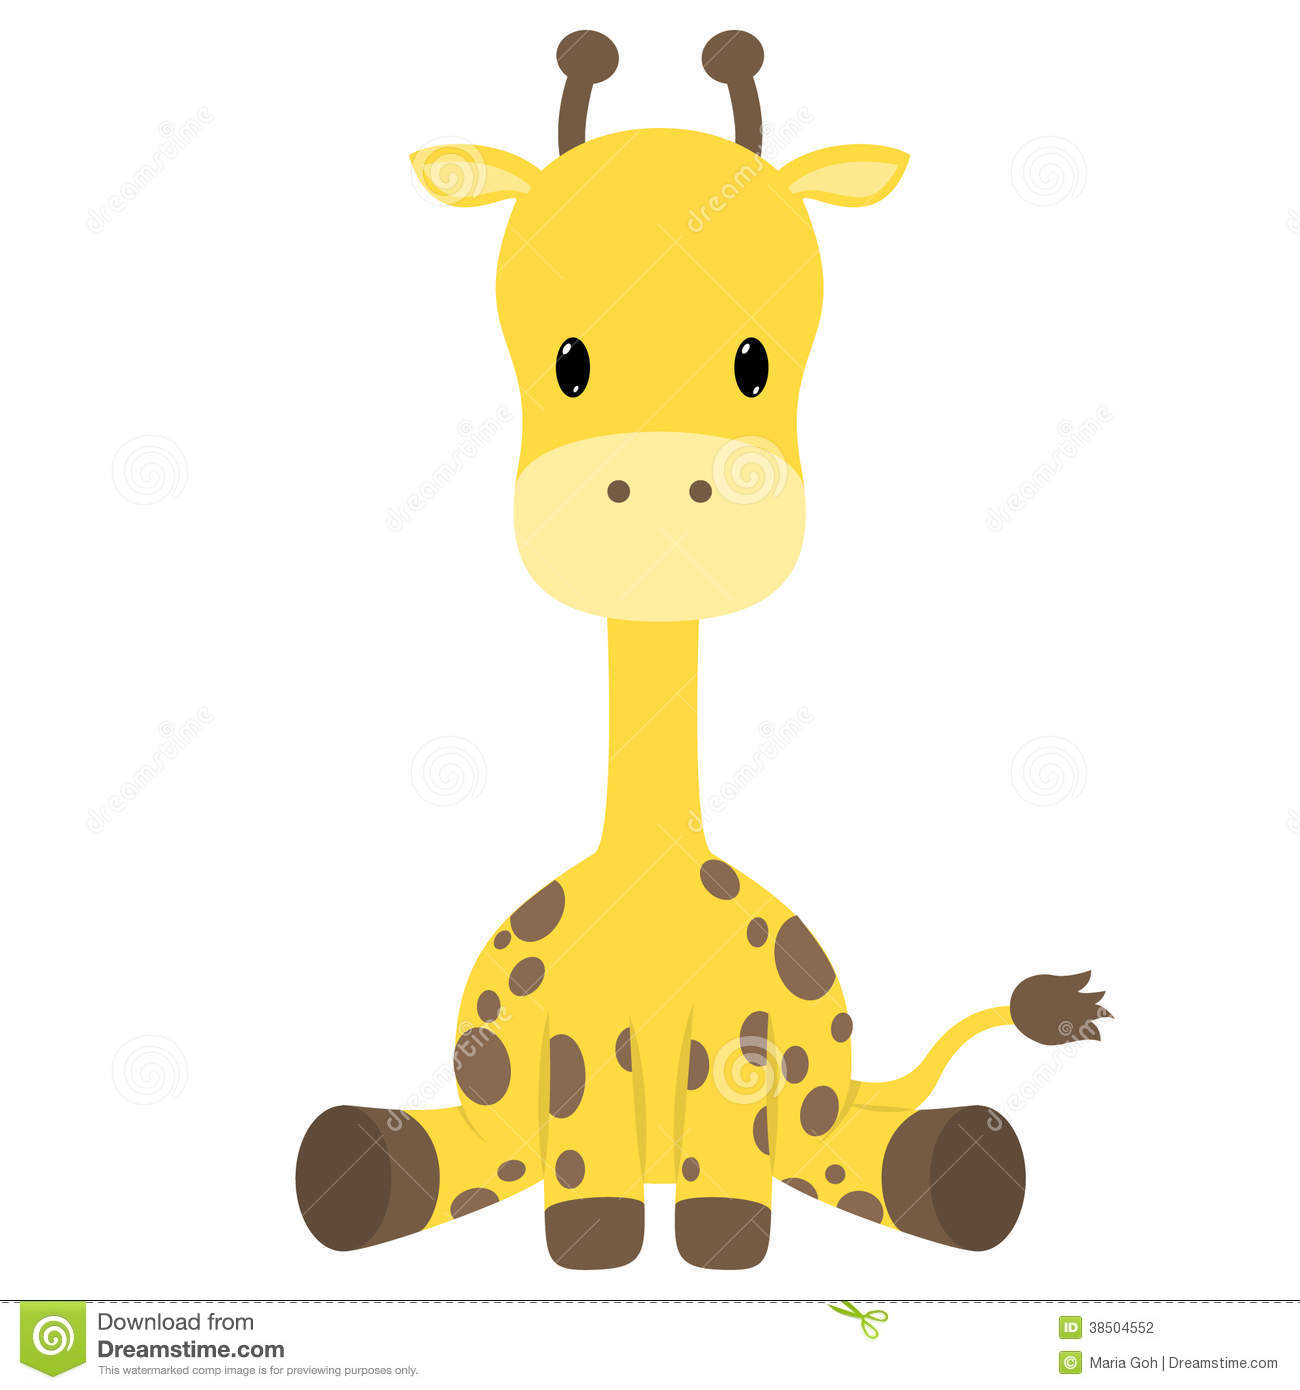 Baby giraffe clipart images svg library stock 55+ Baby Giraffe Clipart | ClipartLook svg library stock